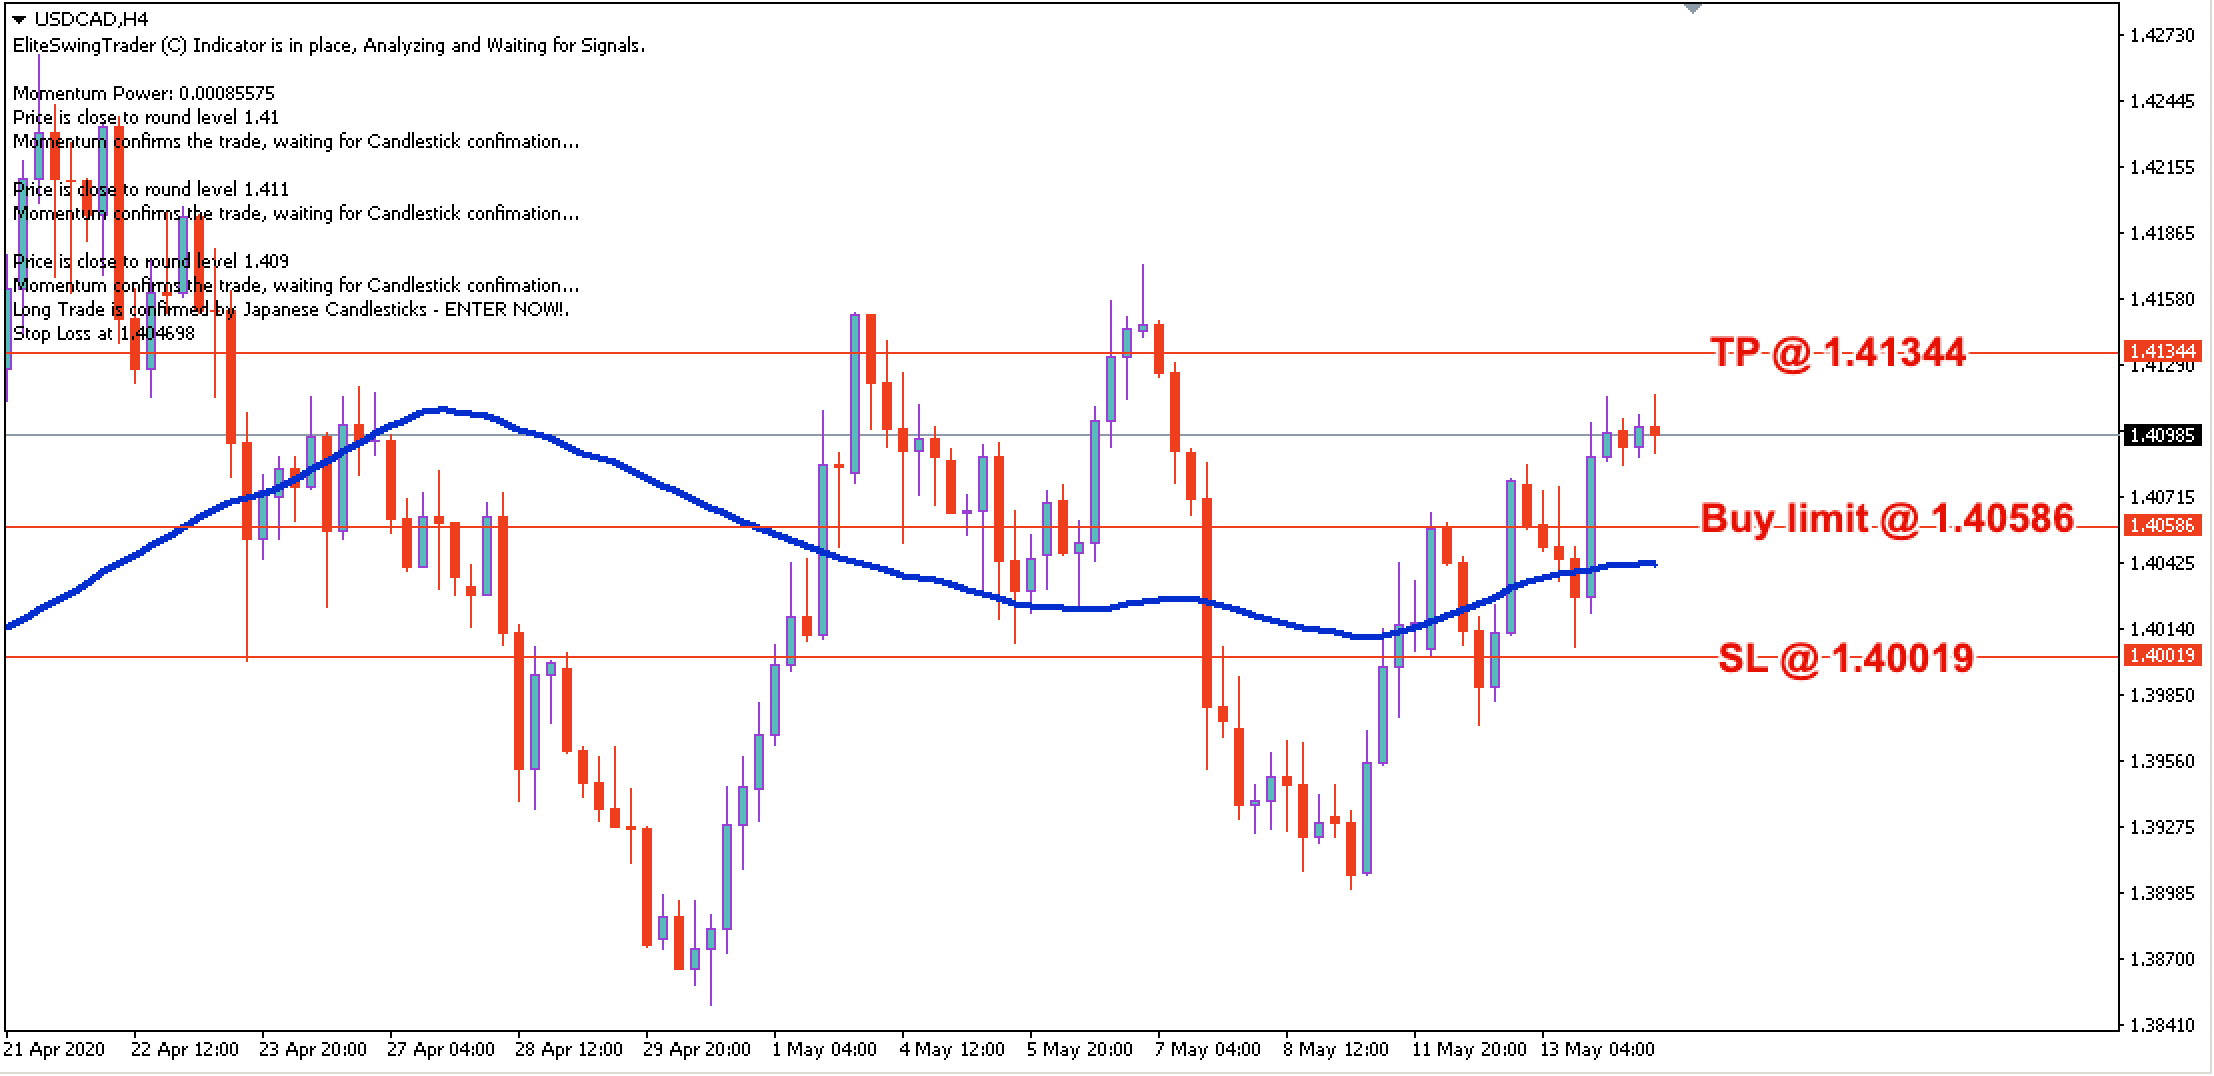 USD/CAD Daily Price Forecast – 14th May 2020